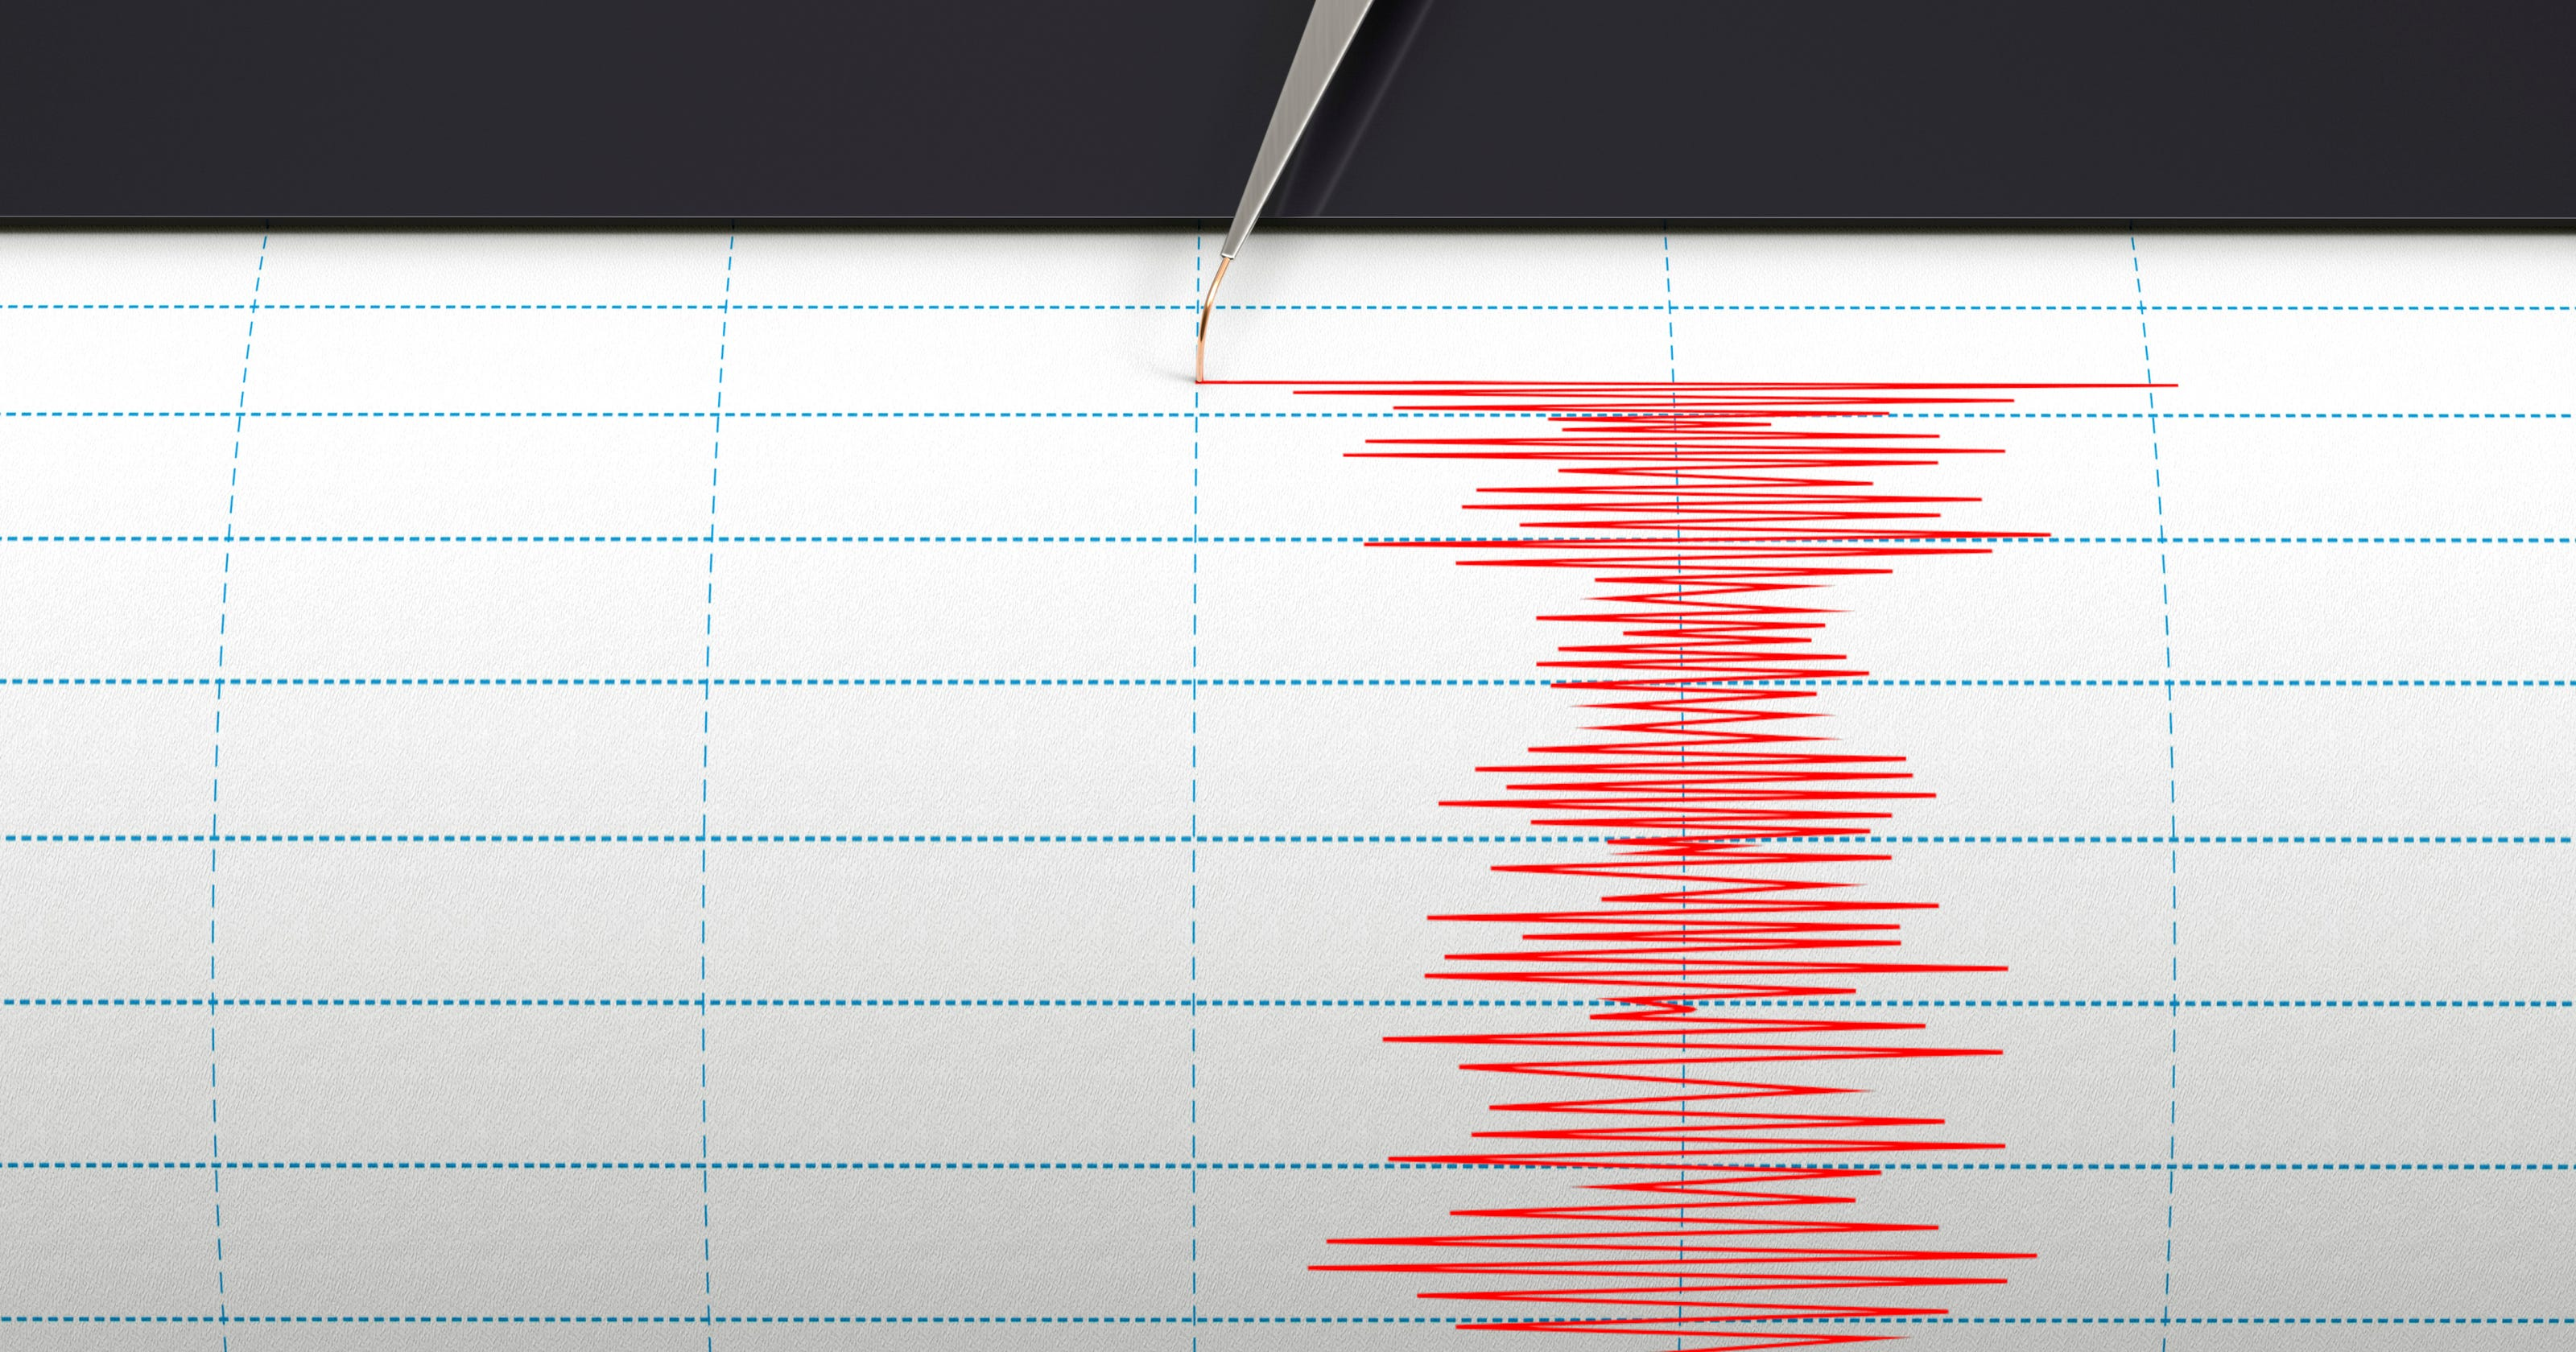 USGS: Earthquake north of Pinnacles rattles Monterey County Thursday